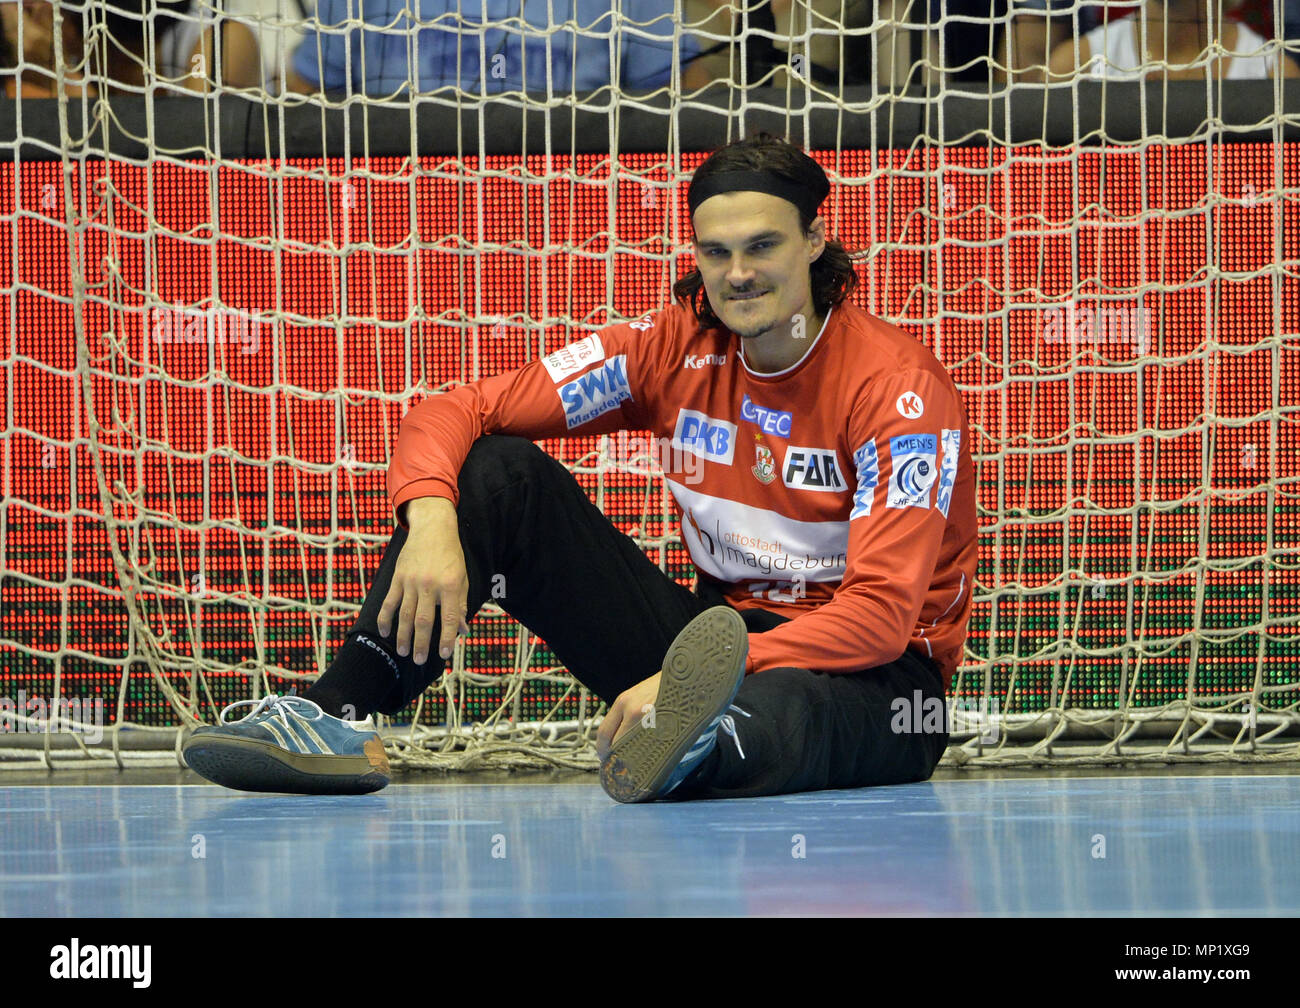 20 May 2018, Germany, Magdeburg: Handball, EHF Cup, Final Four, match for 3rd place, SC Magdeburg vs Frisch Auf Goeppingen at the GETEC Arena: Magdeburg goalie Jannick Green Krejberg. Photo: Jan Kuppert/dpa Credit: dpa picture alliance/Alamy Live News - Stock Image